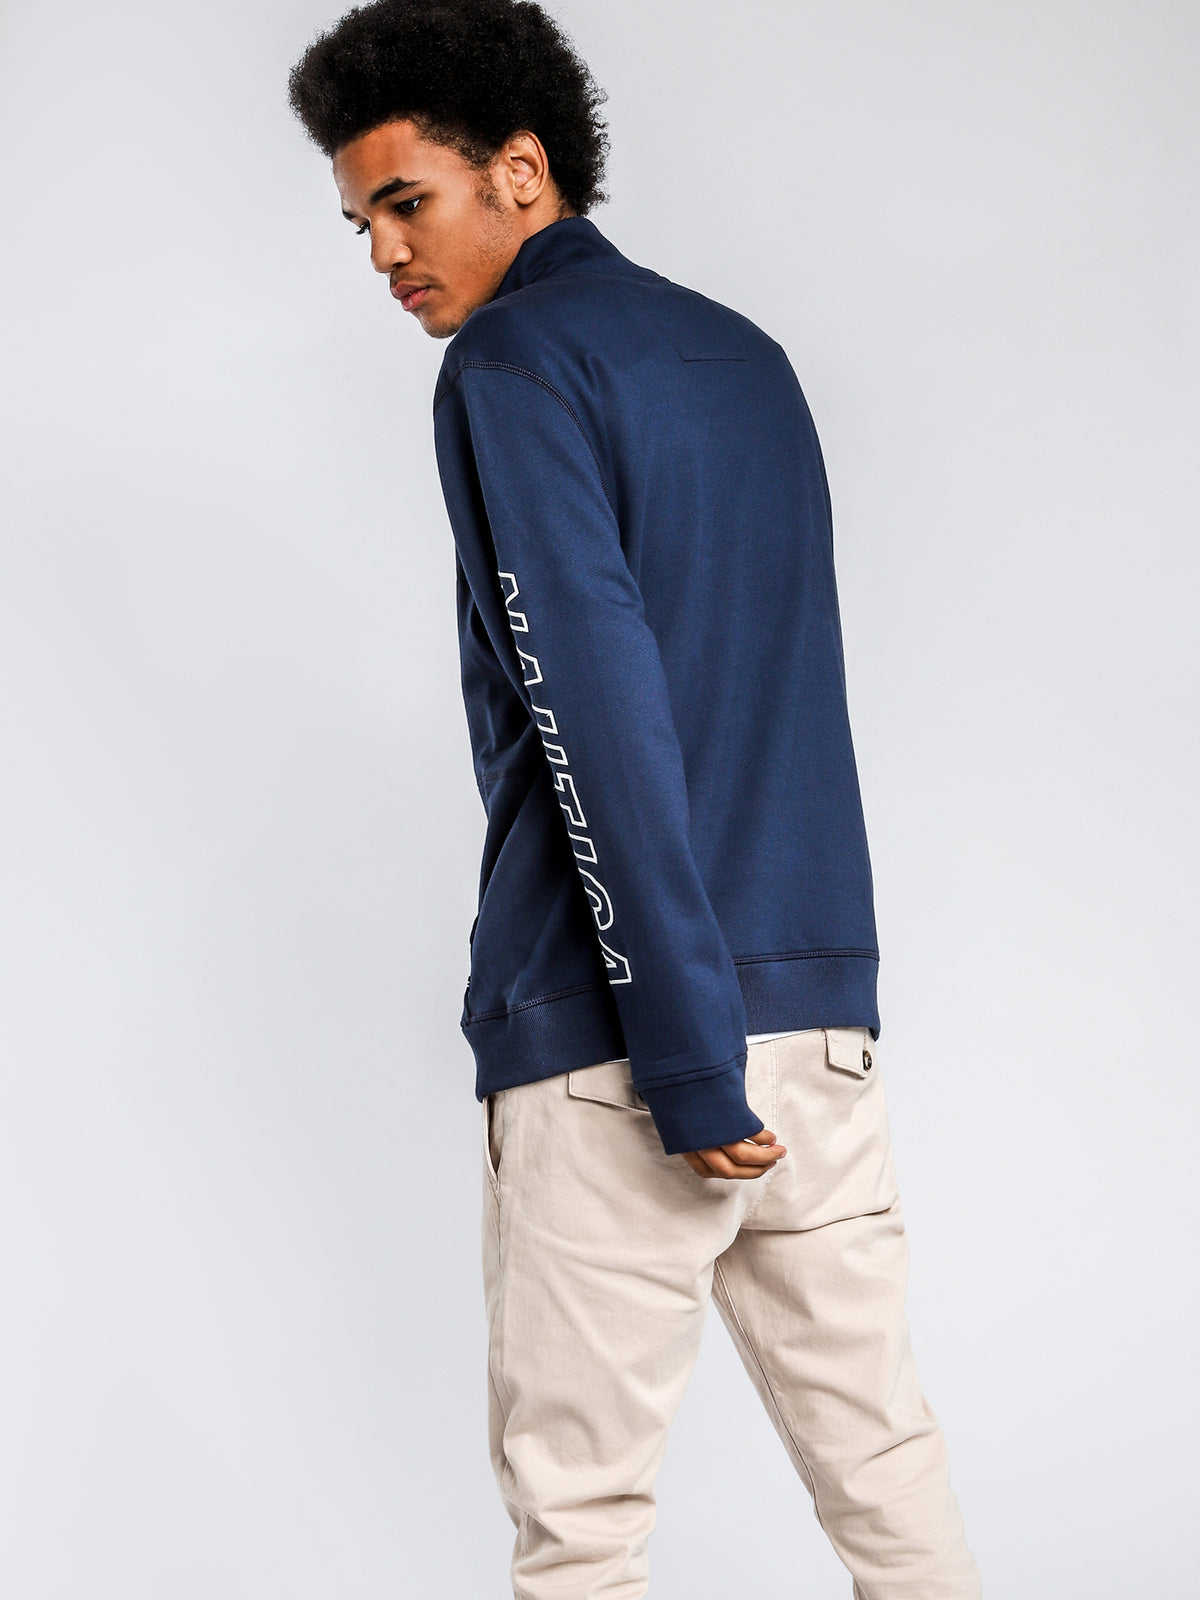 Blue Water Challenge Sweater in Navy Blue